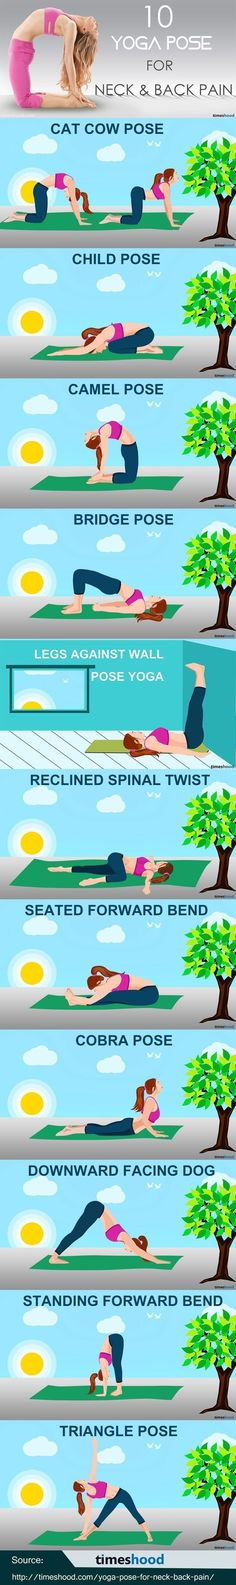 The Best 11 Effective Yoga Pose for Neck and Back Pain to feel more active #YogaPostures,RoutinesAndPoses #yogaforbackpain